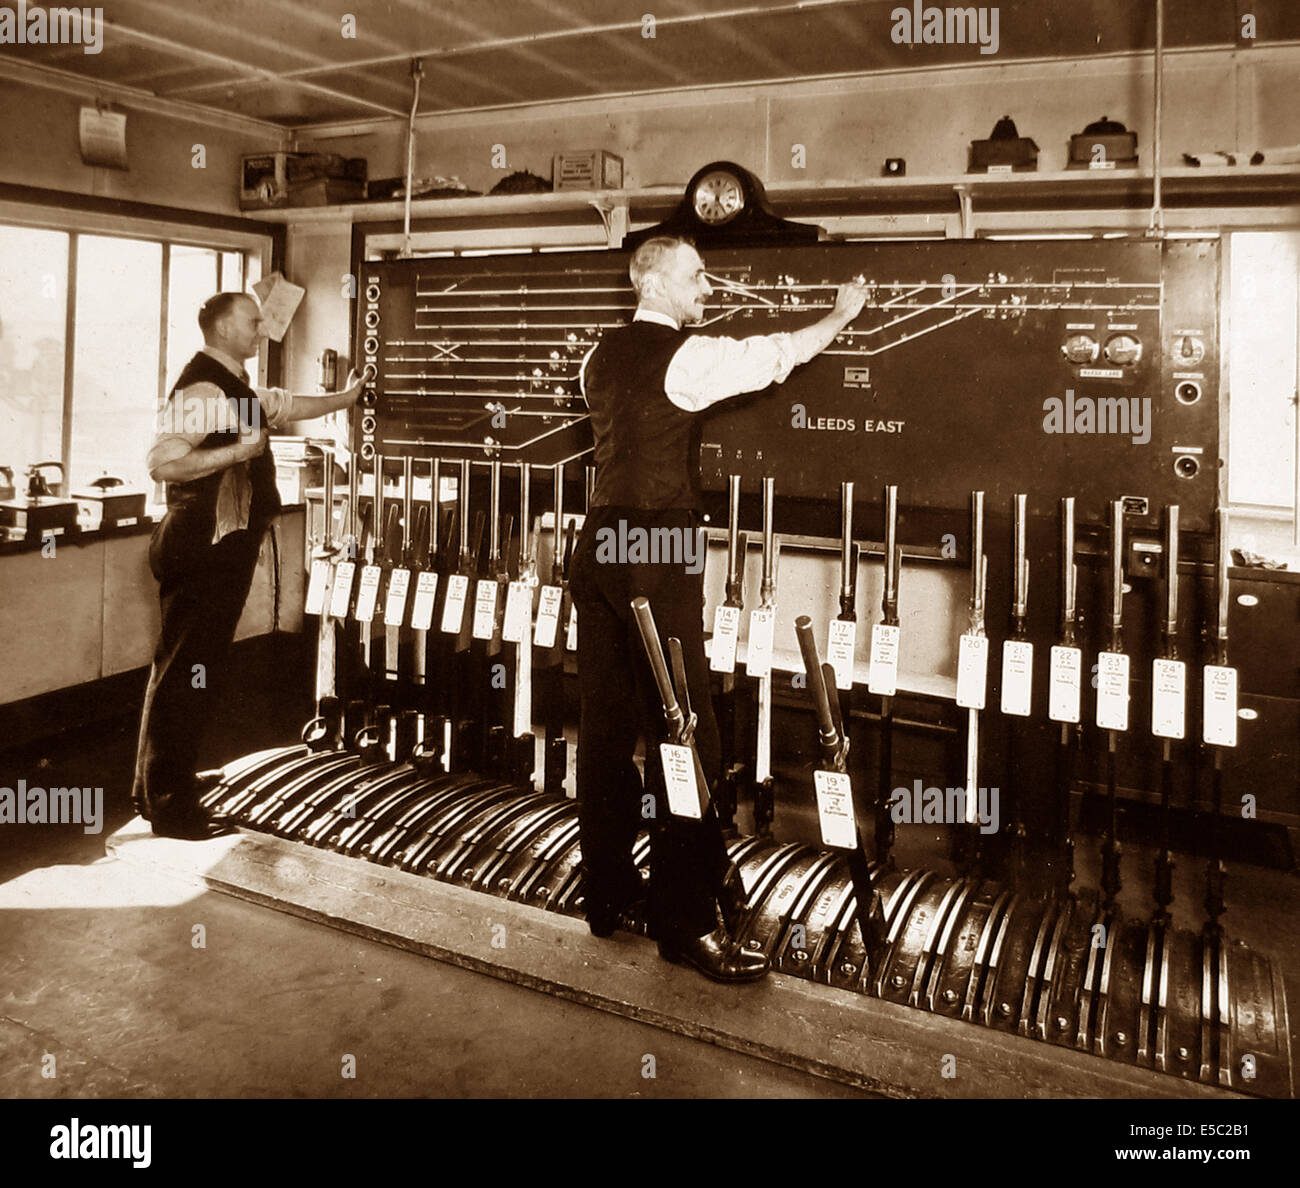 Leeds East Signal Box possibly 1930s - Stock Image